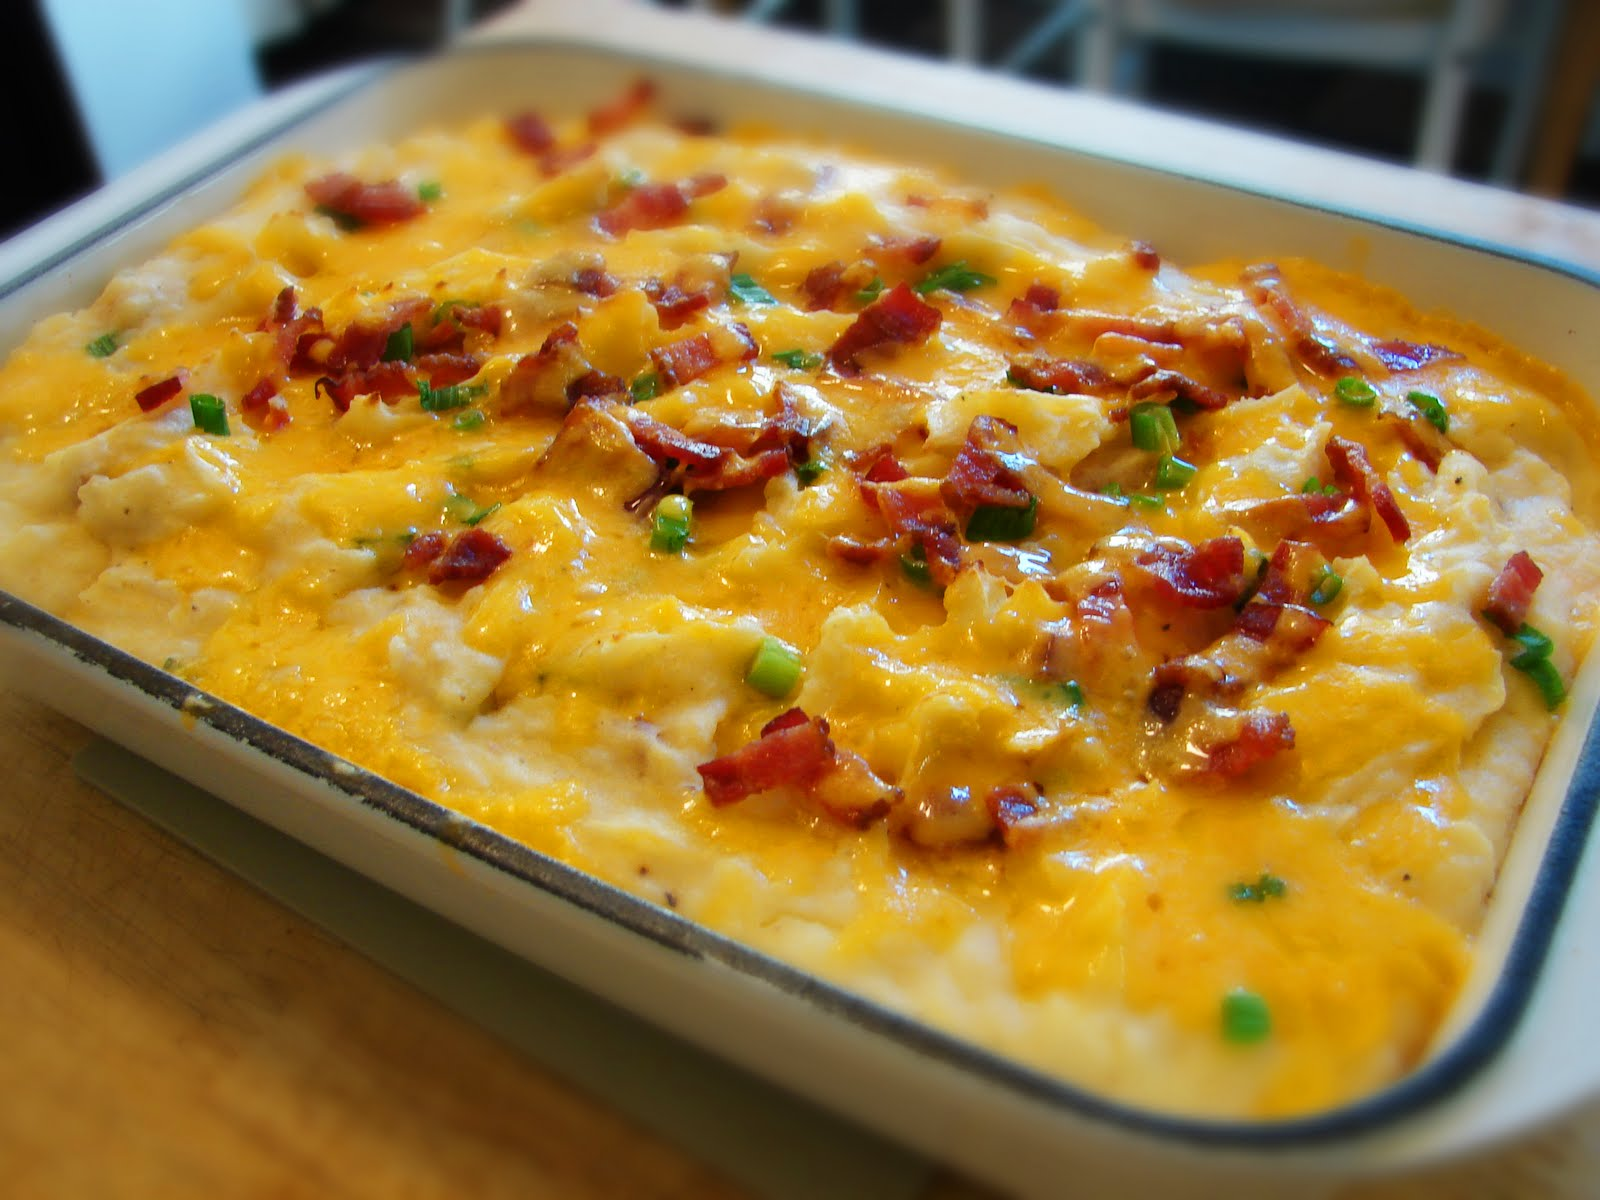 Top 5 Hearty Casserole Dishes For Super Bowl